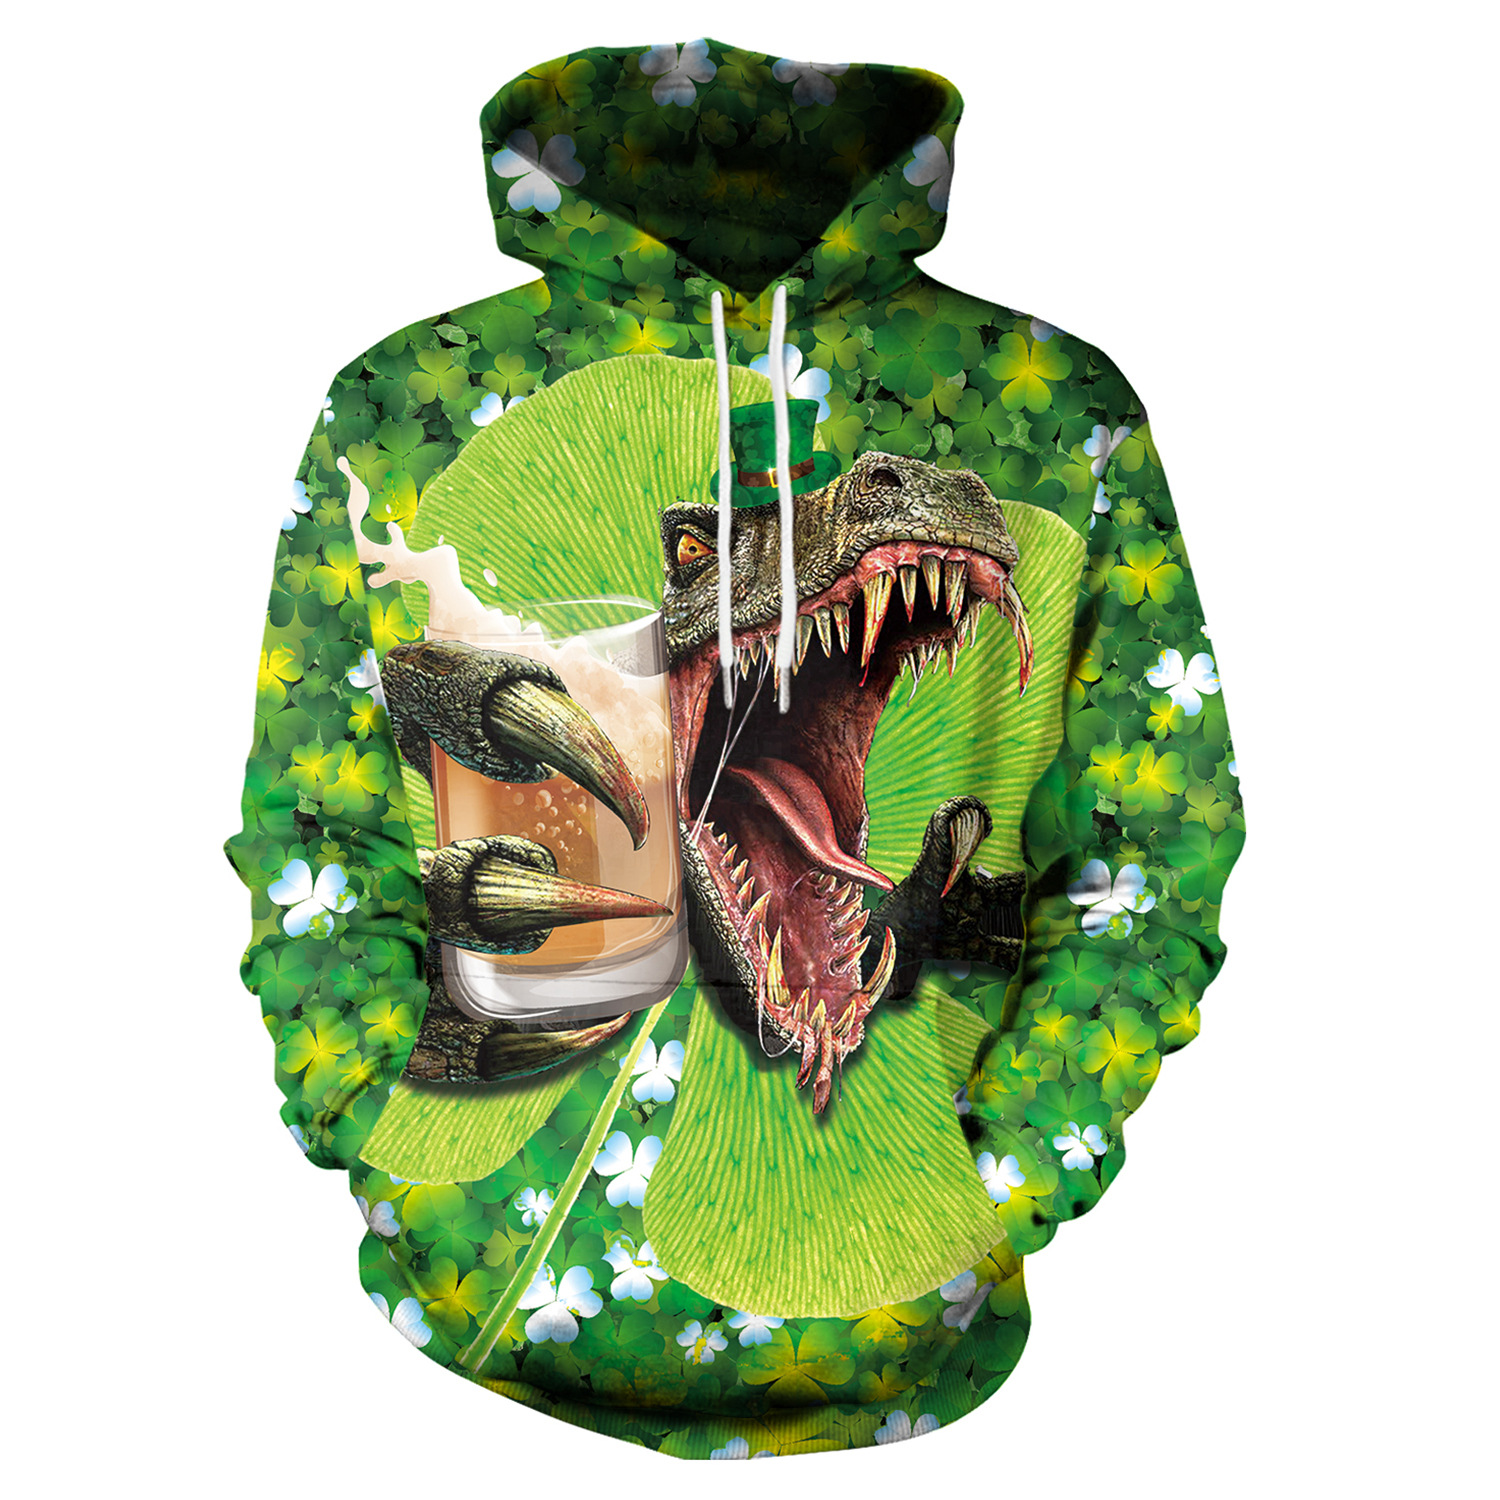 St Patrick's Day Green Tyrannosaurus Rex Print Hoodies Men Hoodie with Hat Round Neck Loose Sweatshirt Pullover Streetwear